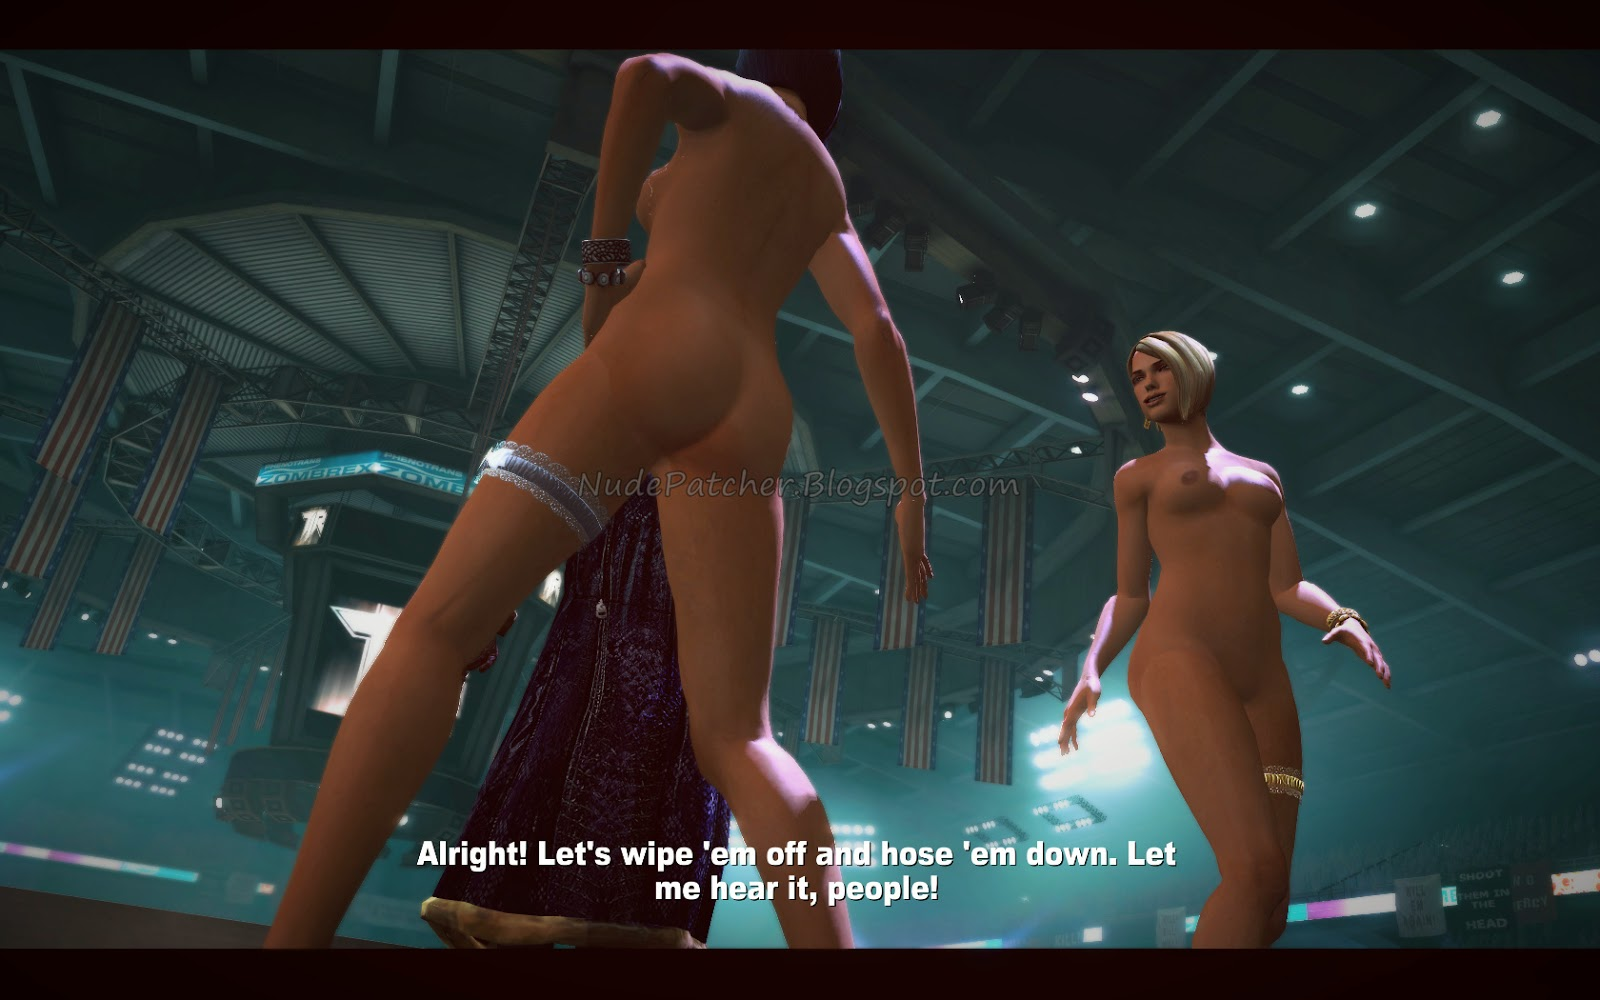 Dead rising xbox hentai way integrate!